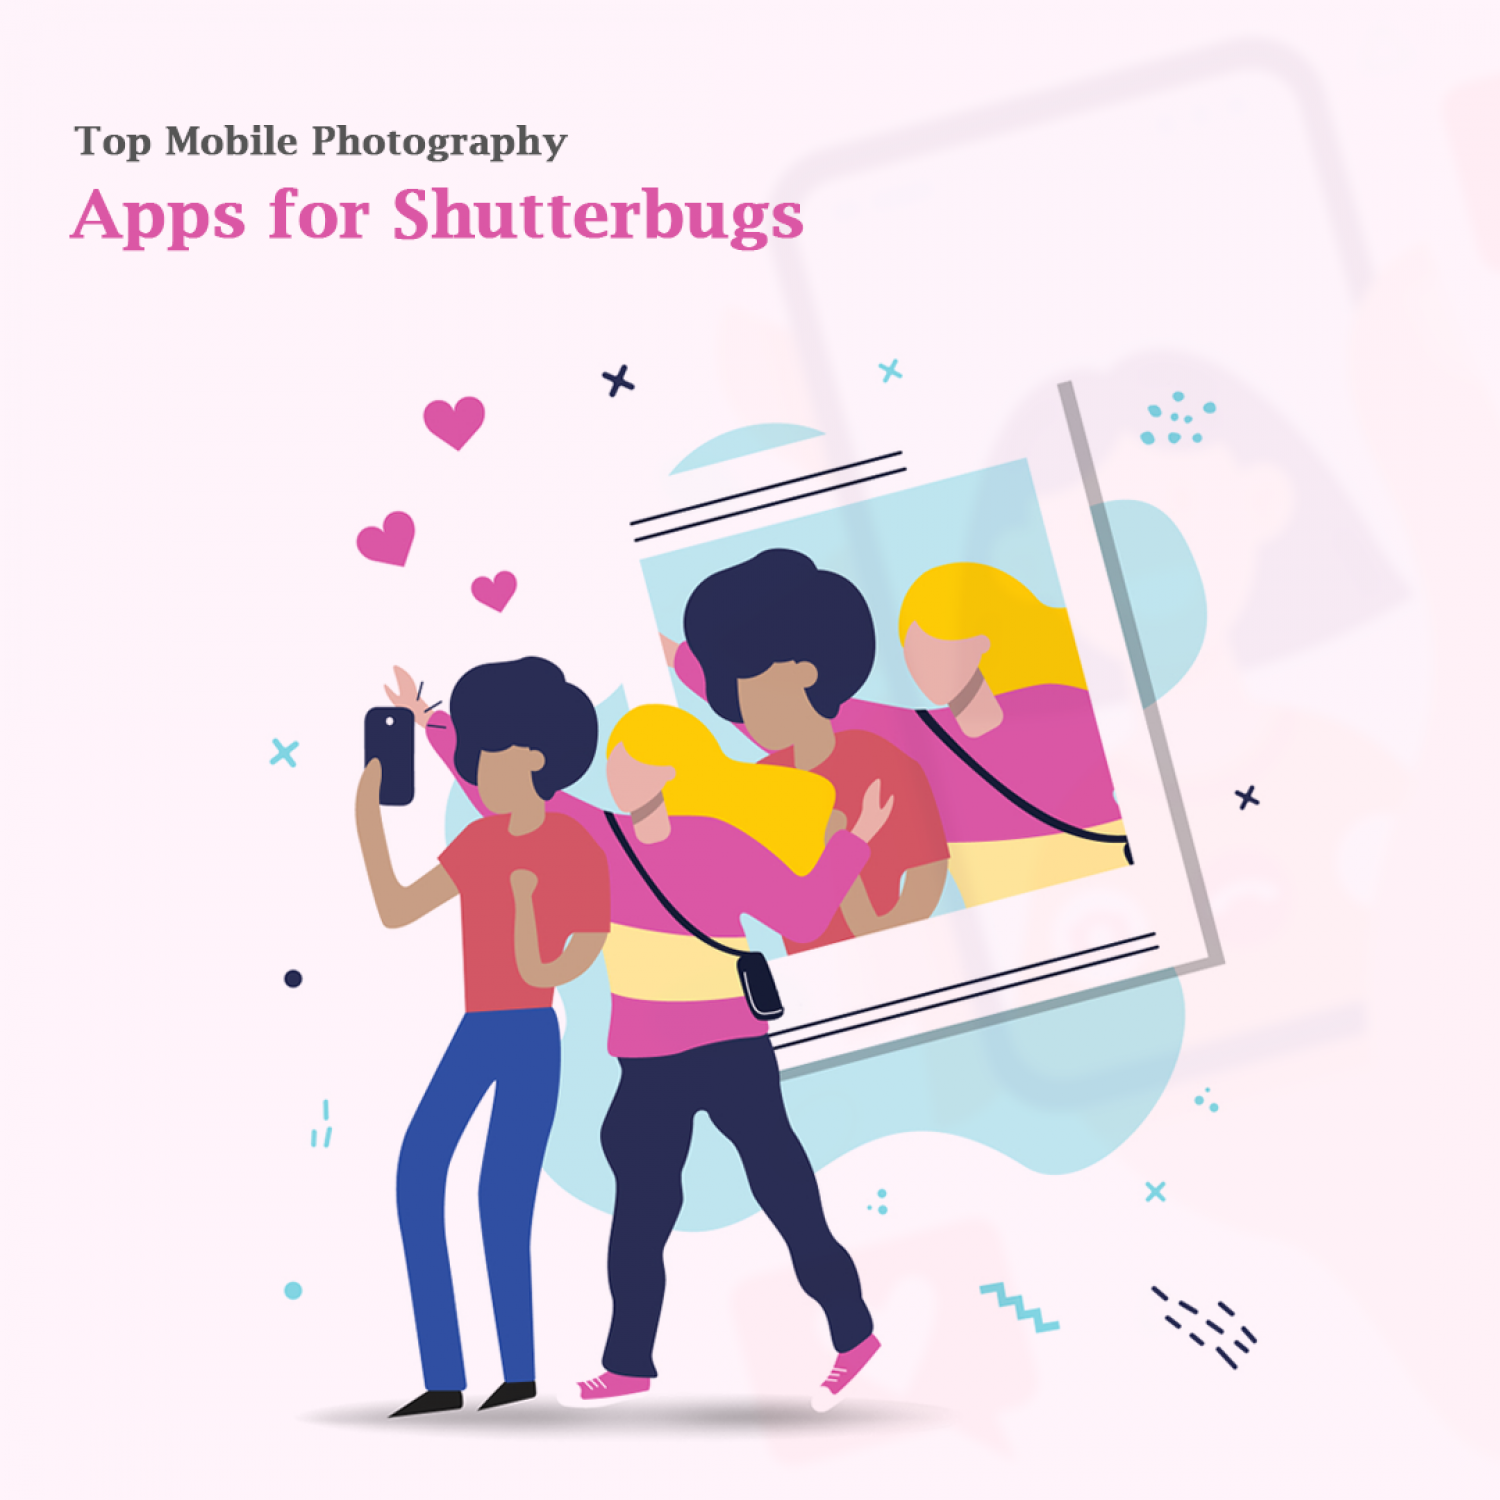 Top Mobile Photography Apps for Shutterbugs Infographic